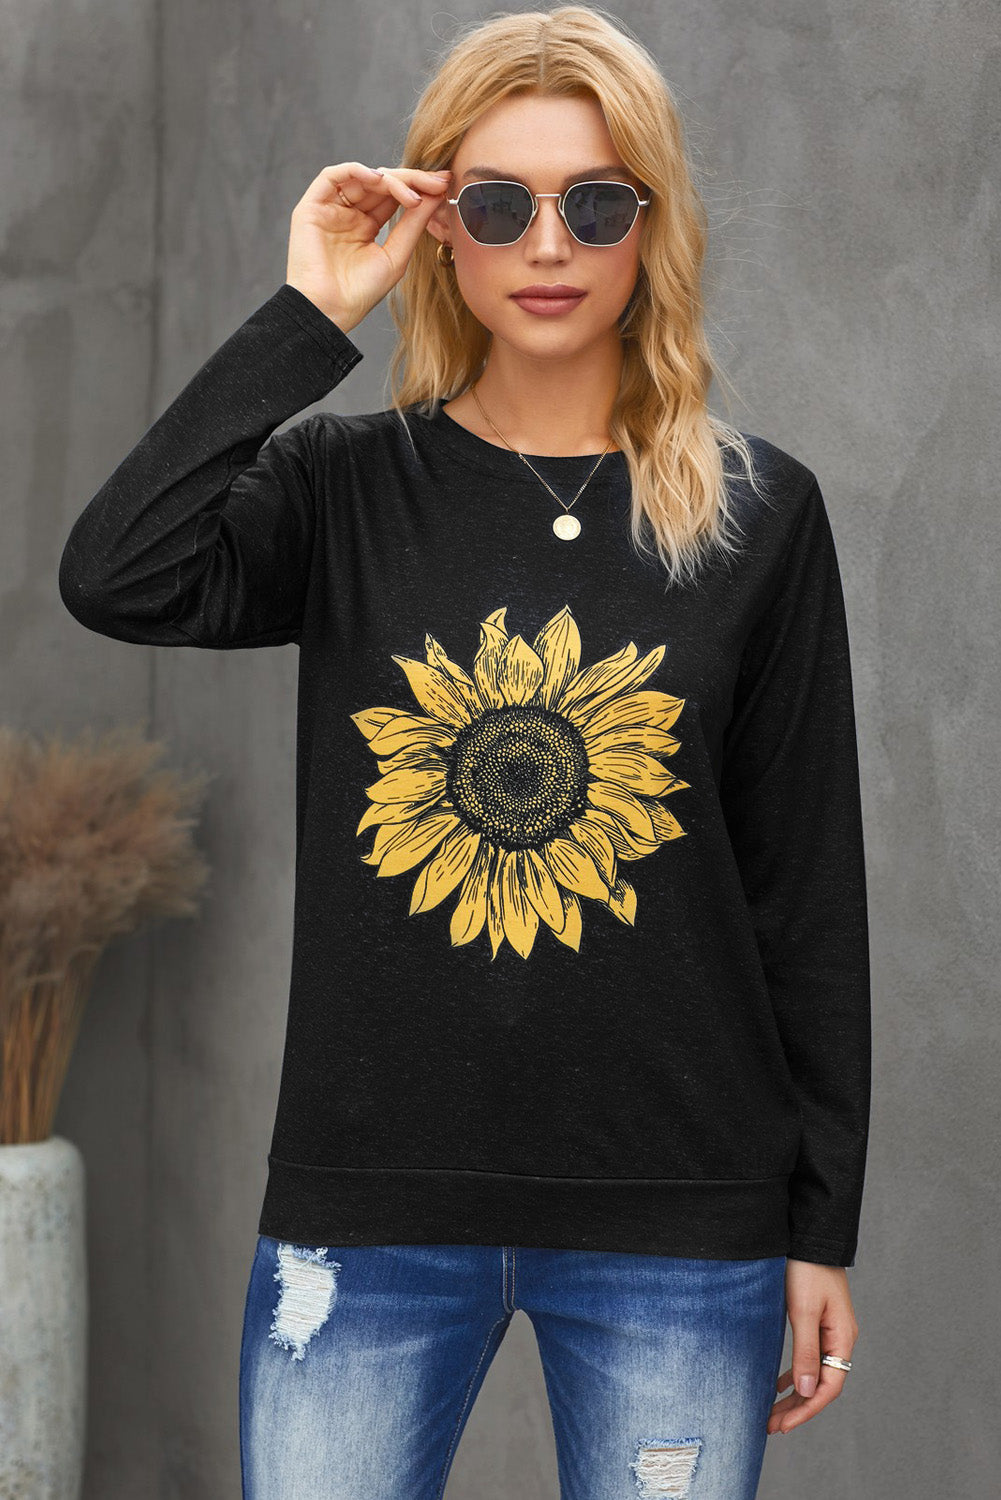 Sunflower Print Black Knit Top Long Sleeve Tops Discount Designer Fashion Clothes Shoes Bags Women Men Kids Children Black Owned Business